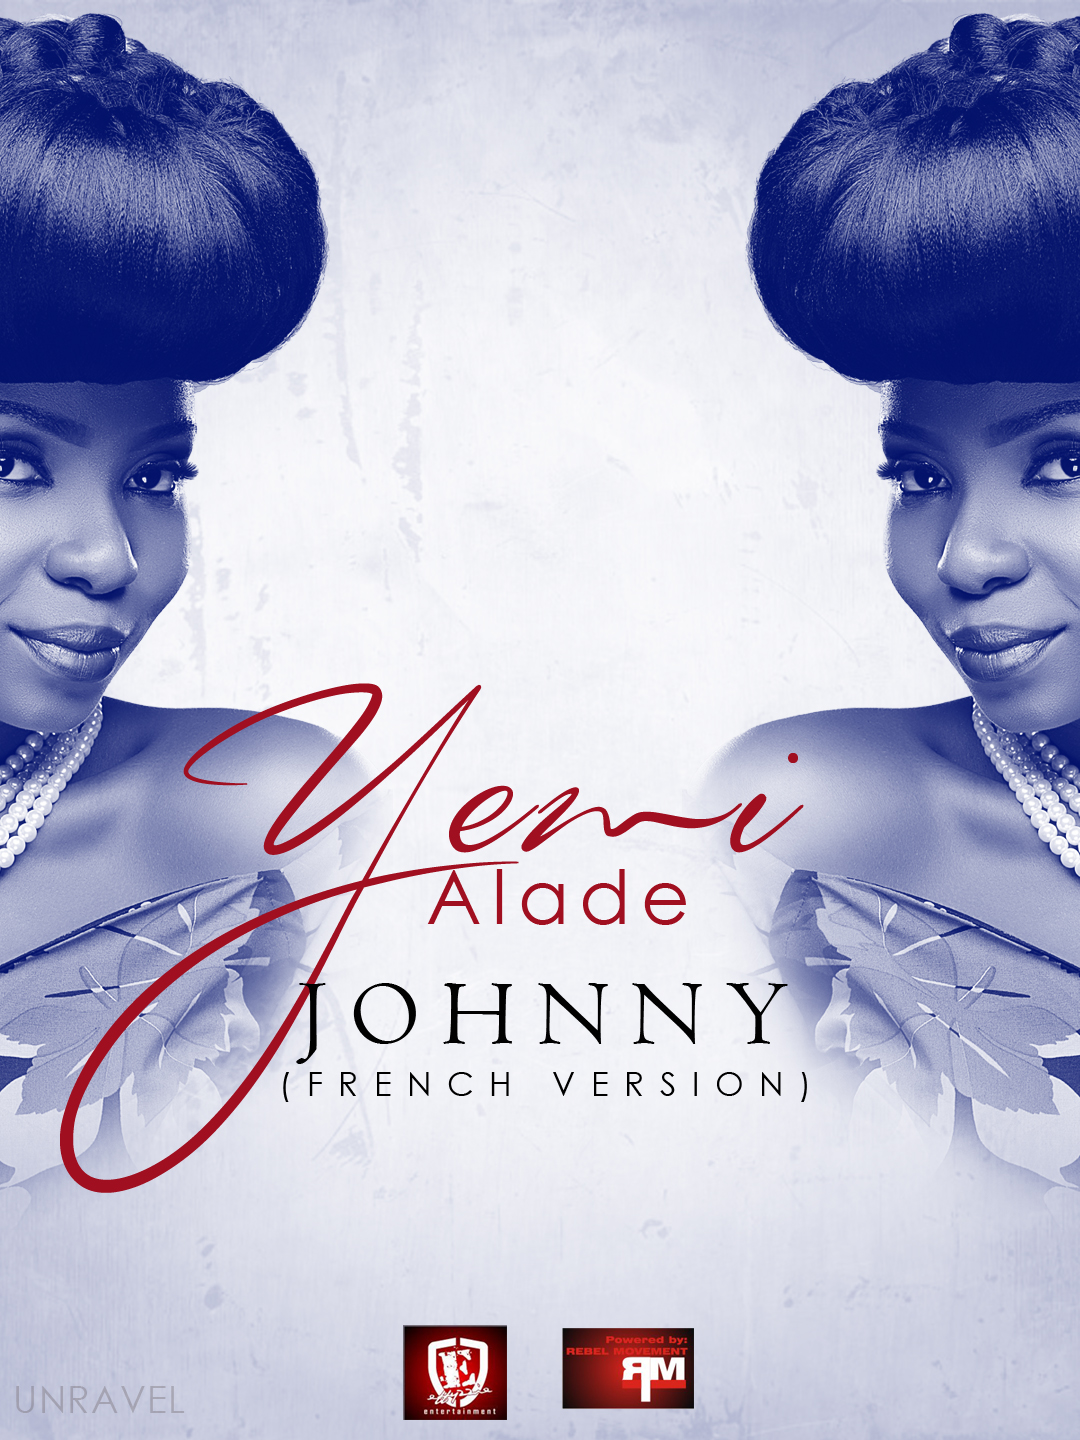 yemi alade johnny free mp3 download